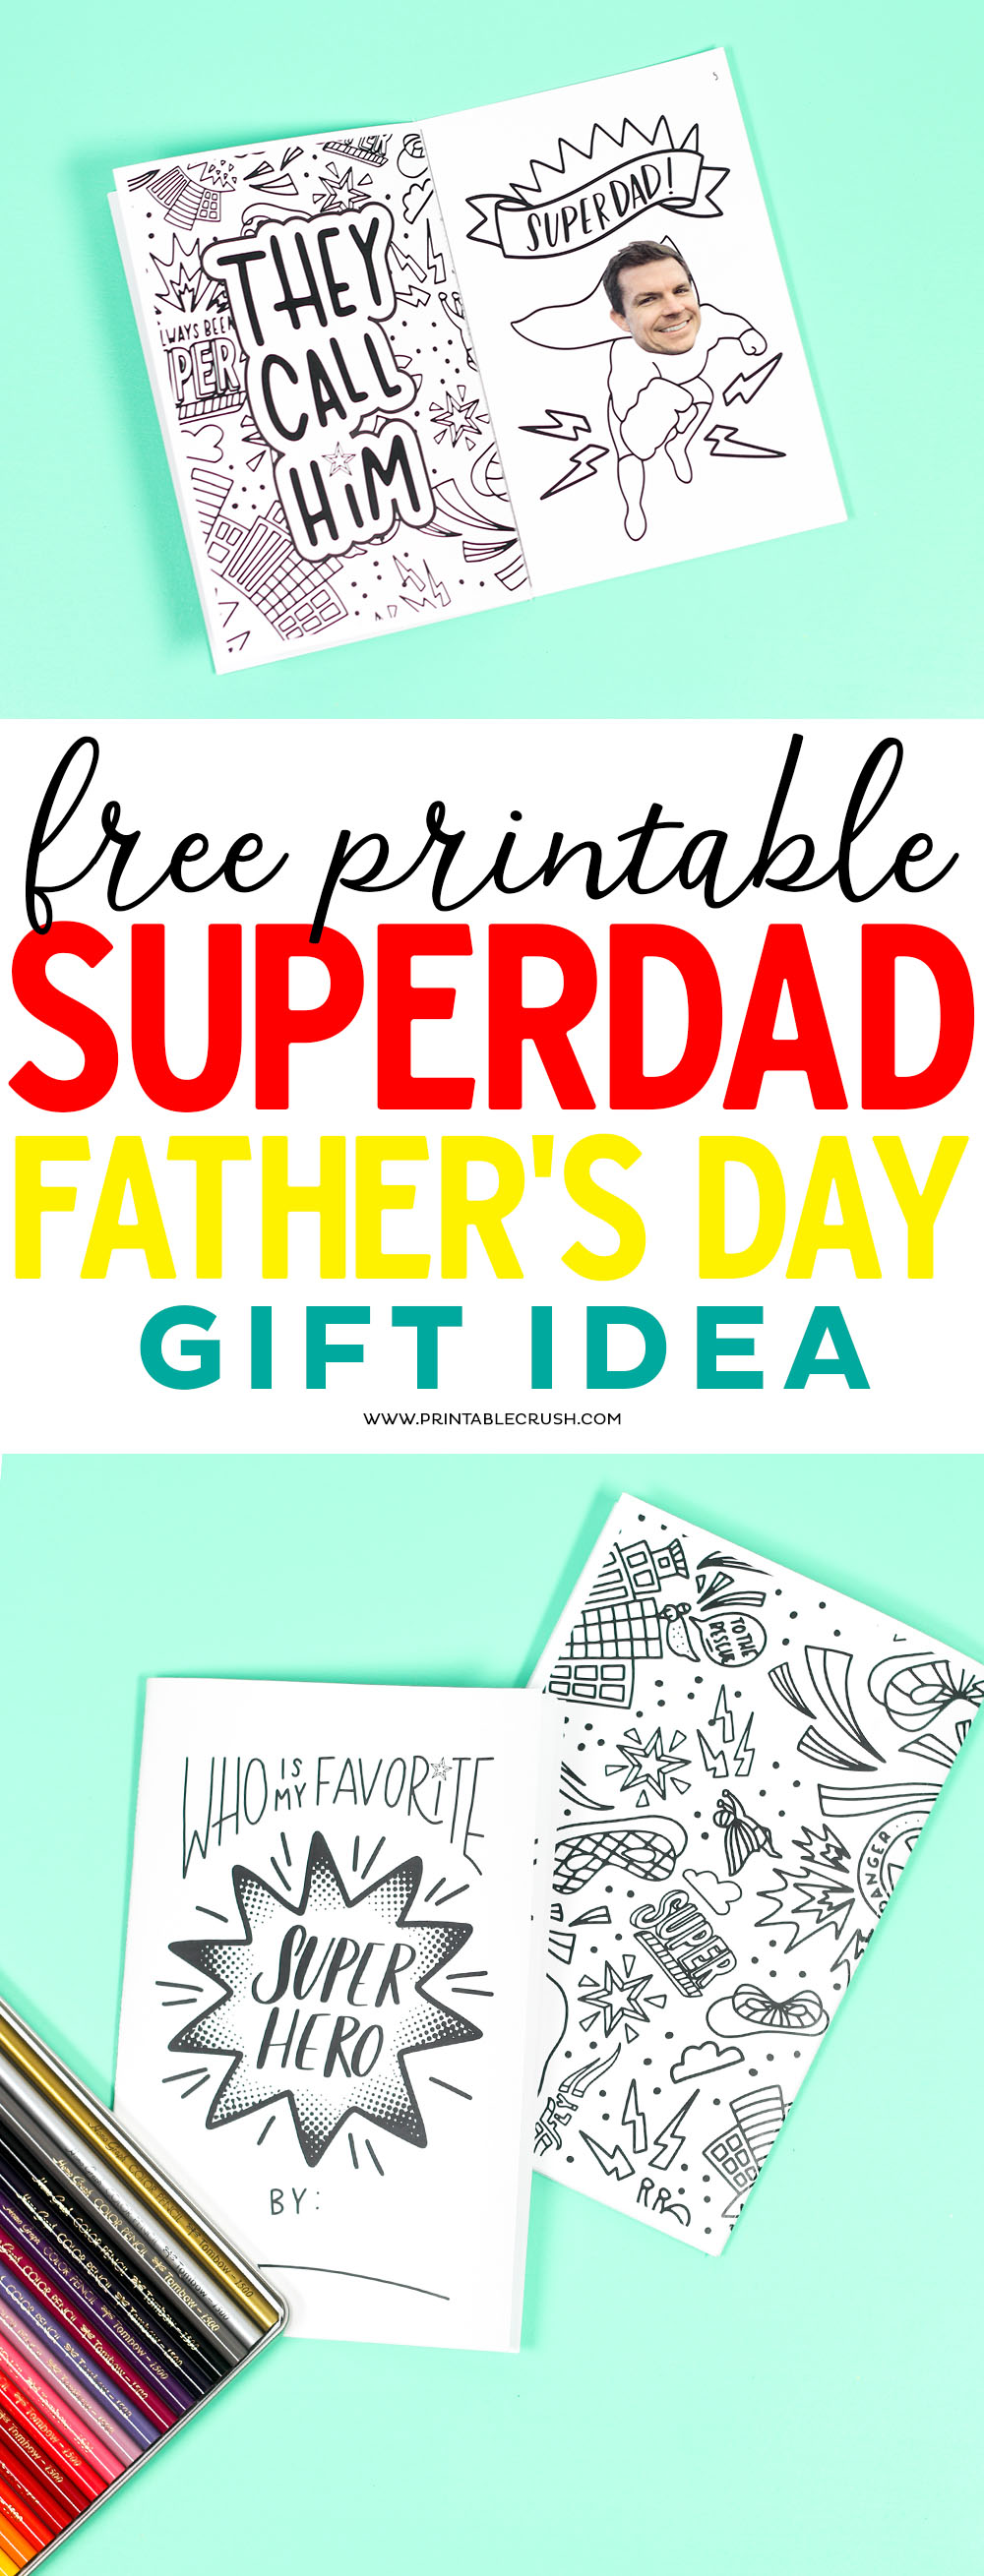 This free printable SUPERDAD father's day gift idea is a fun kids activity. Includes 8 fun coloring pages you can personalize with your own family pictures!